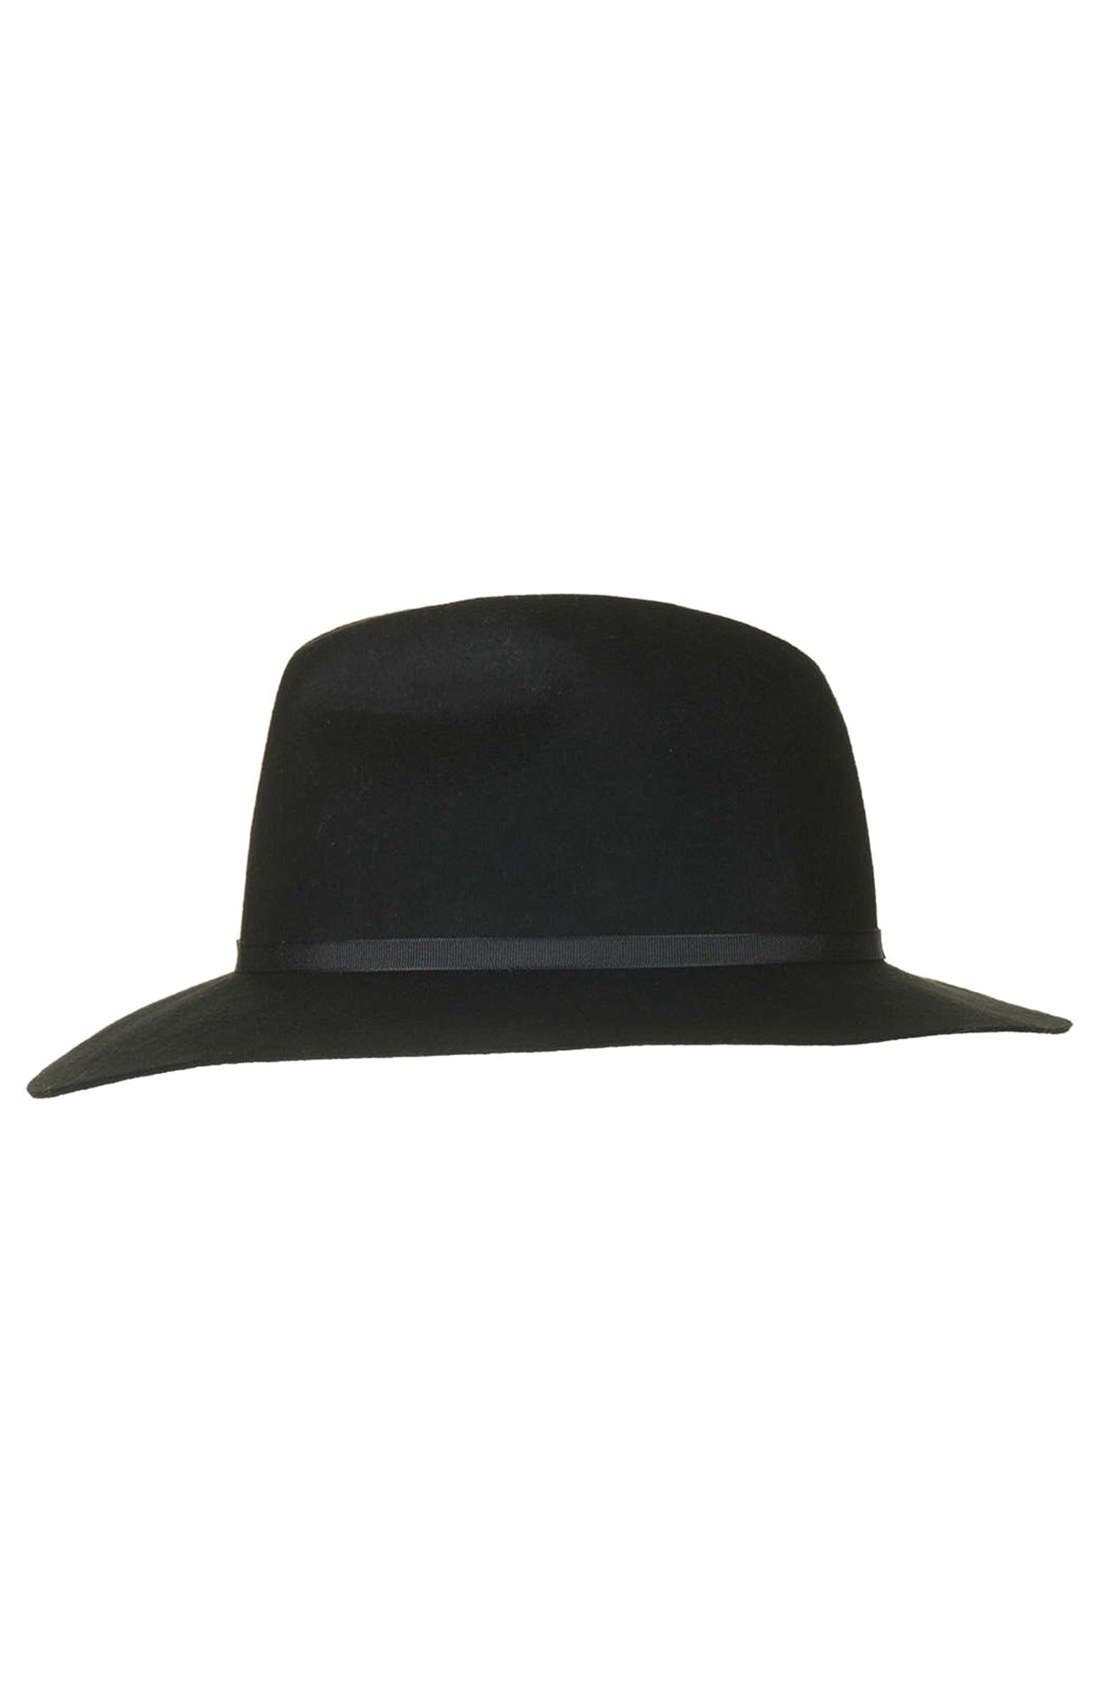 Alternate Image 1 Selected - Topshop Classic Fedora